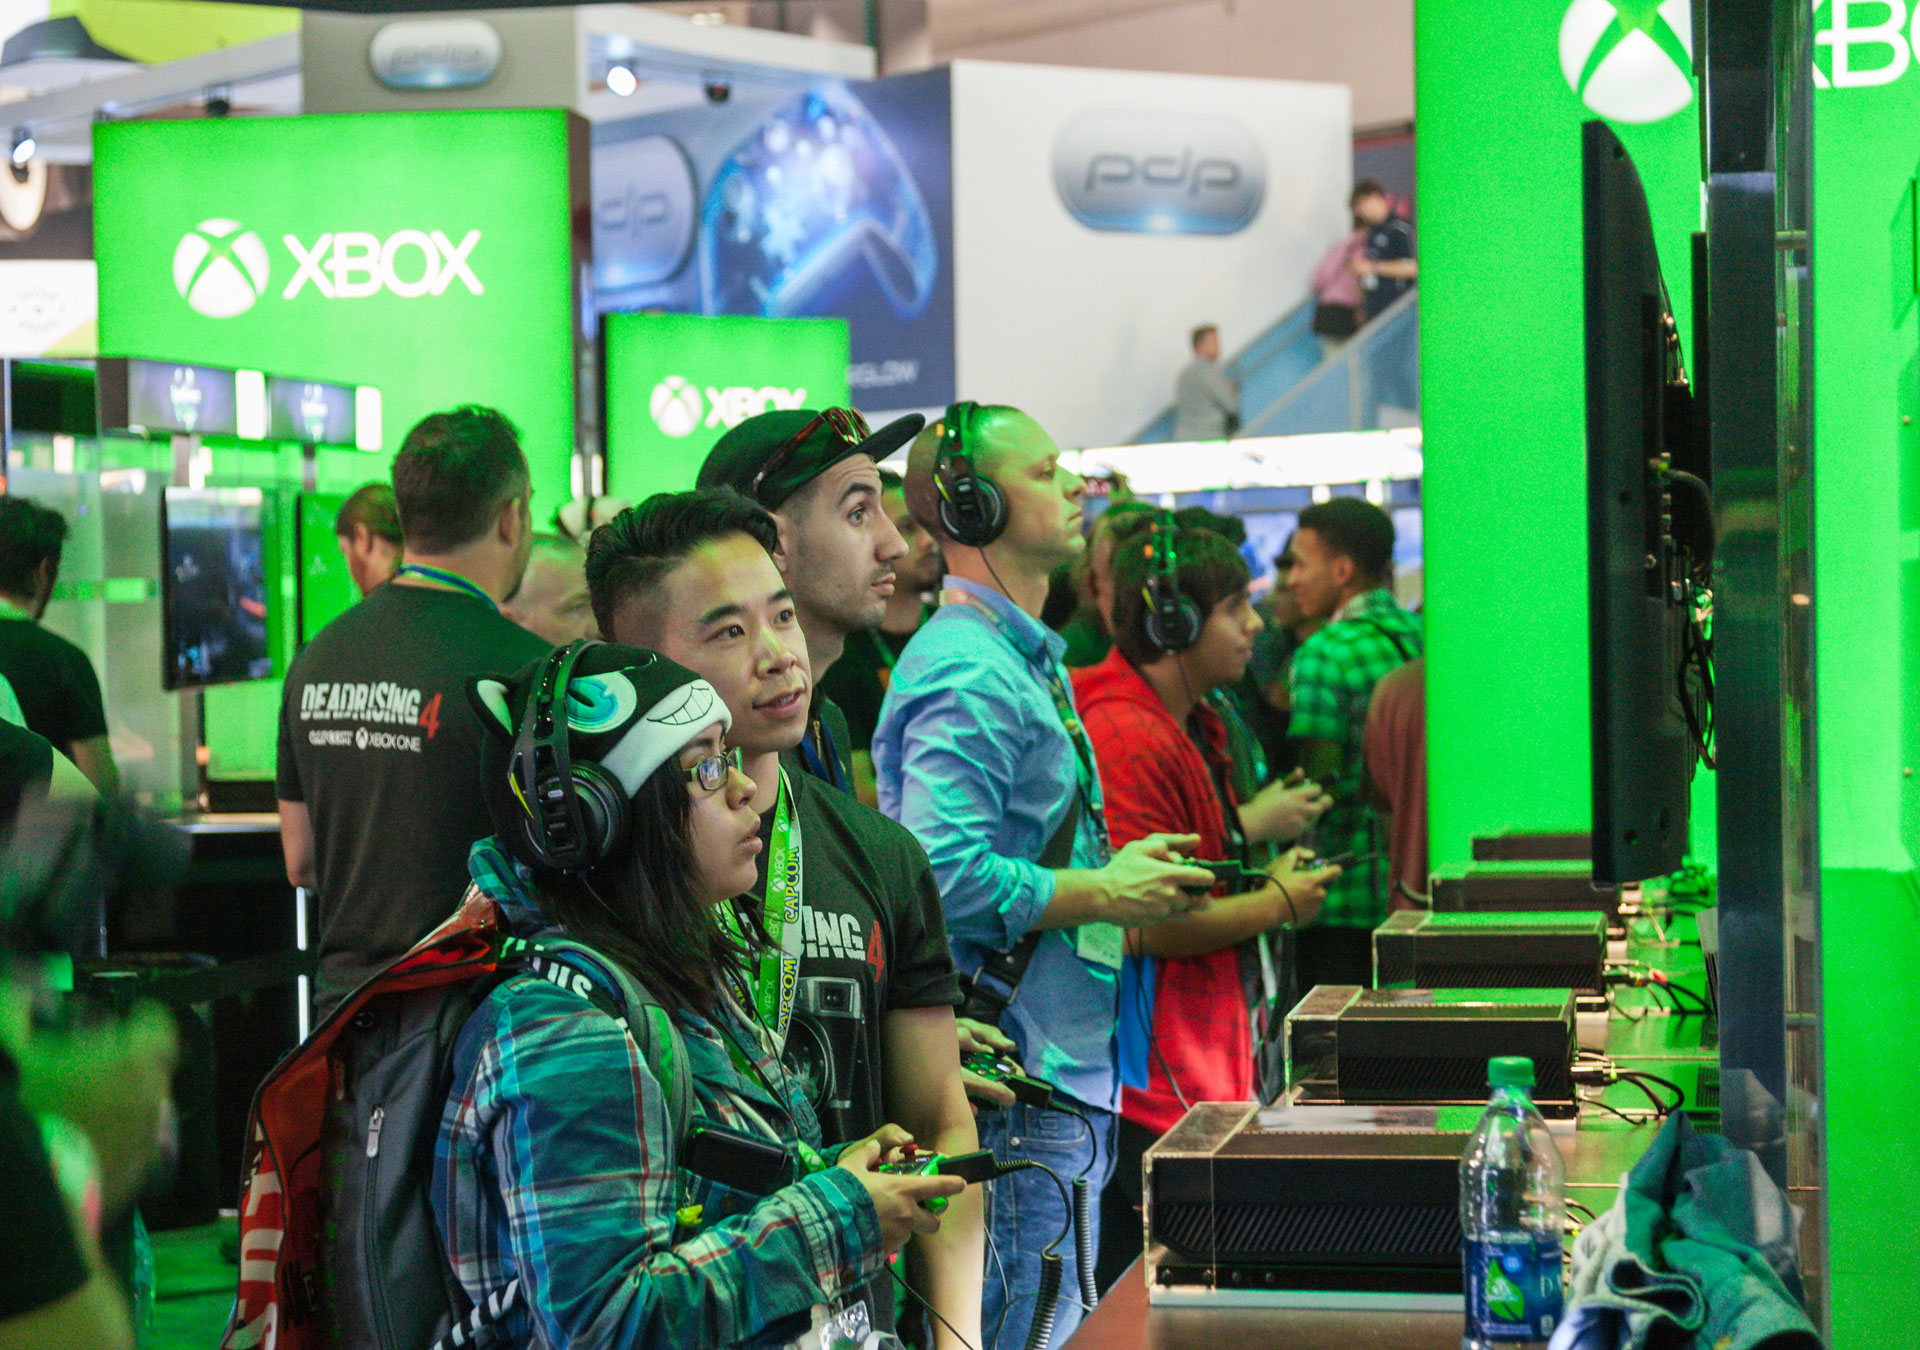 corporate events xbox consumer activation